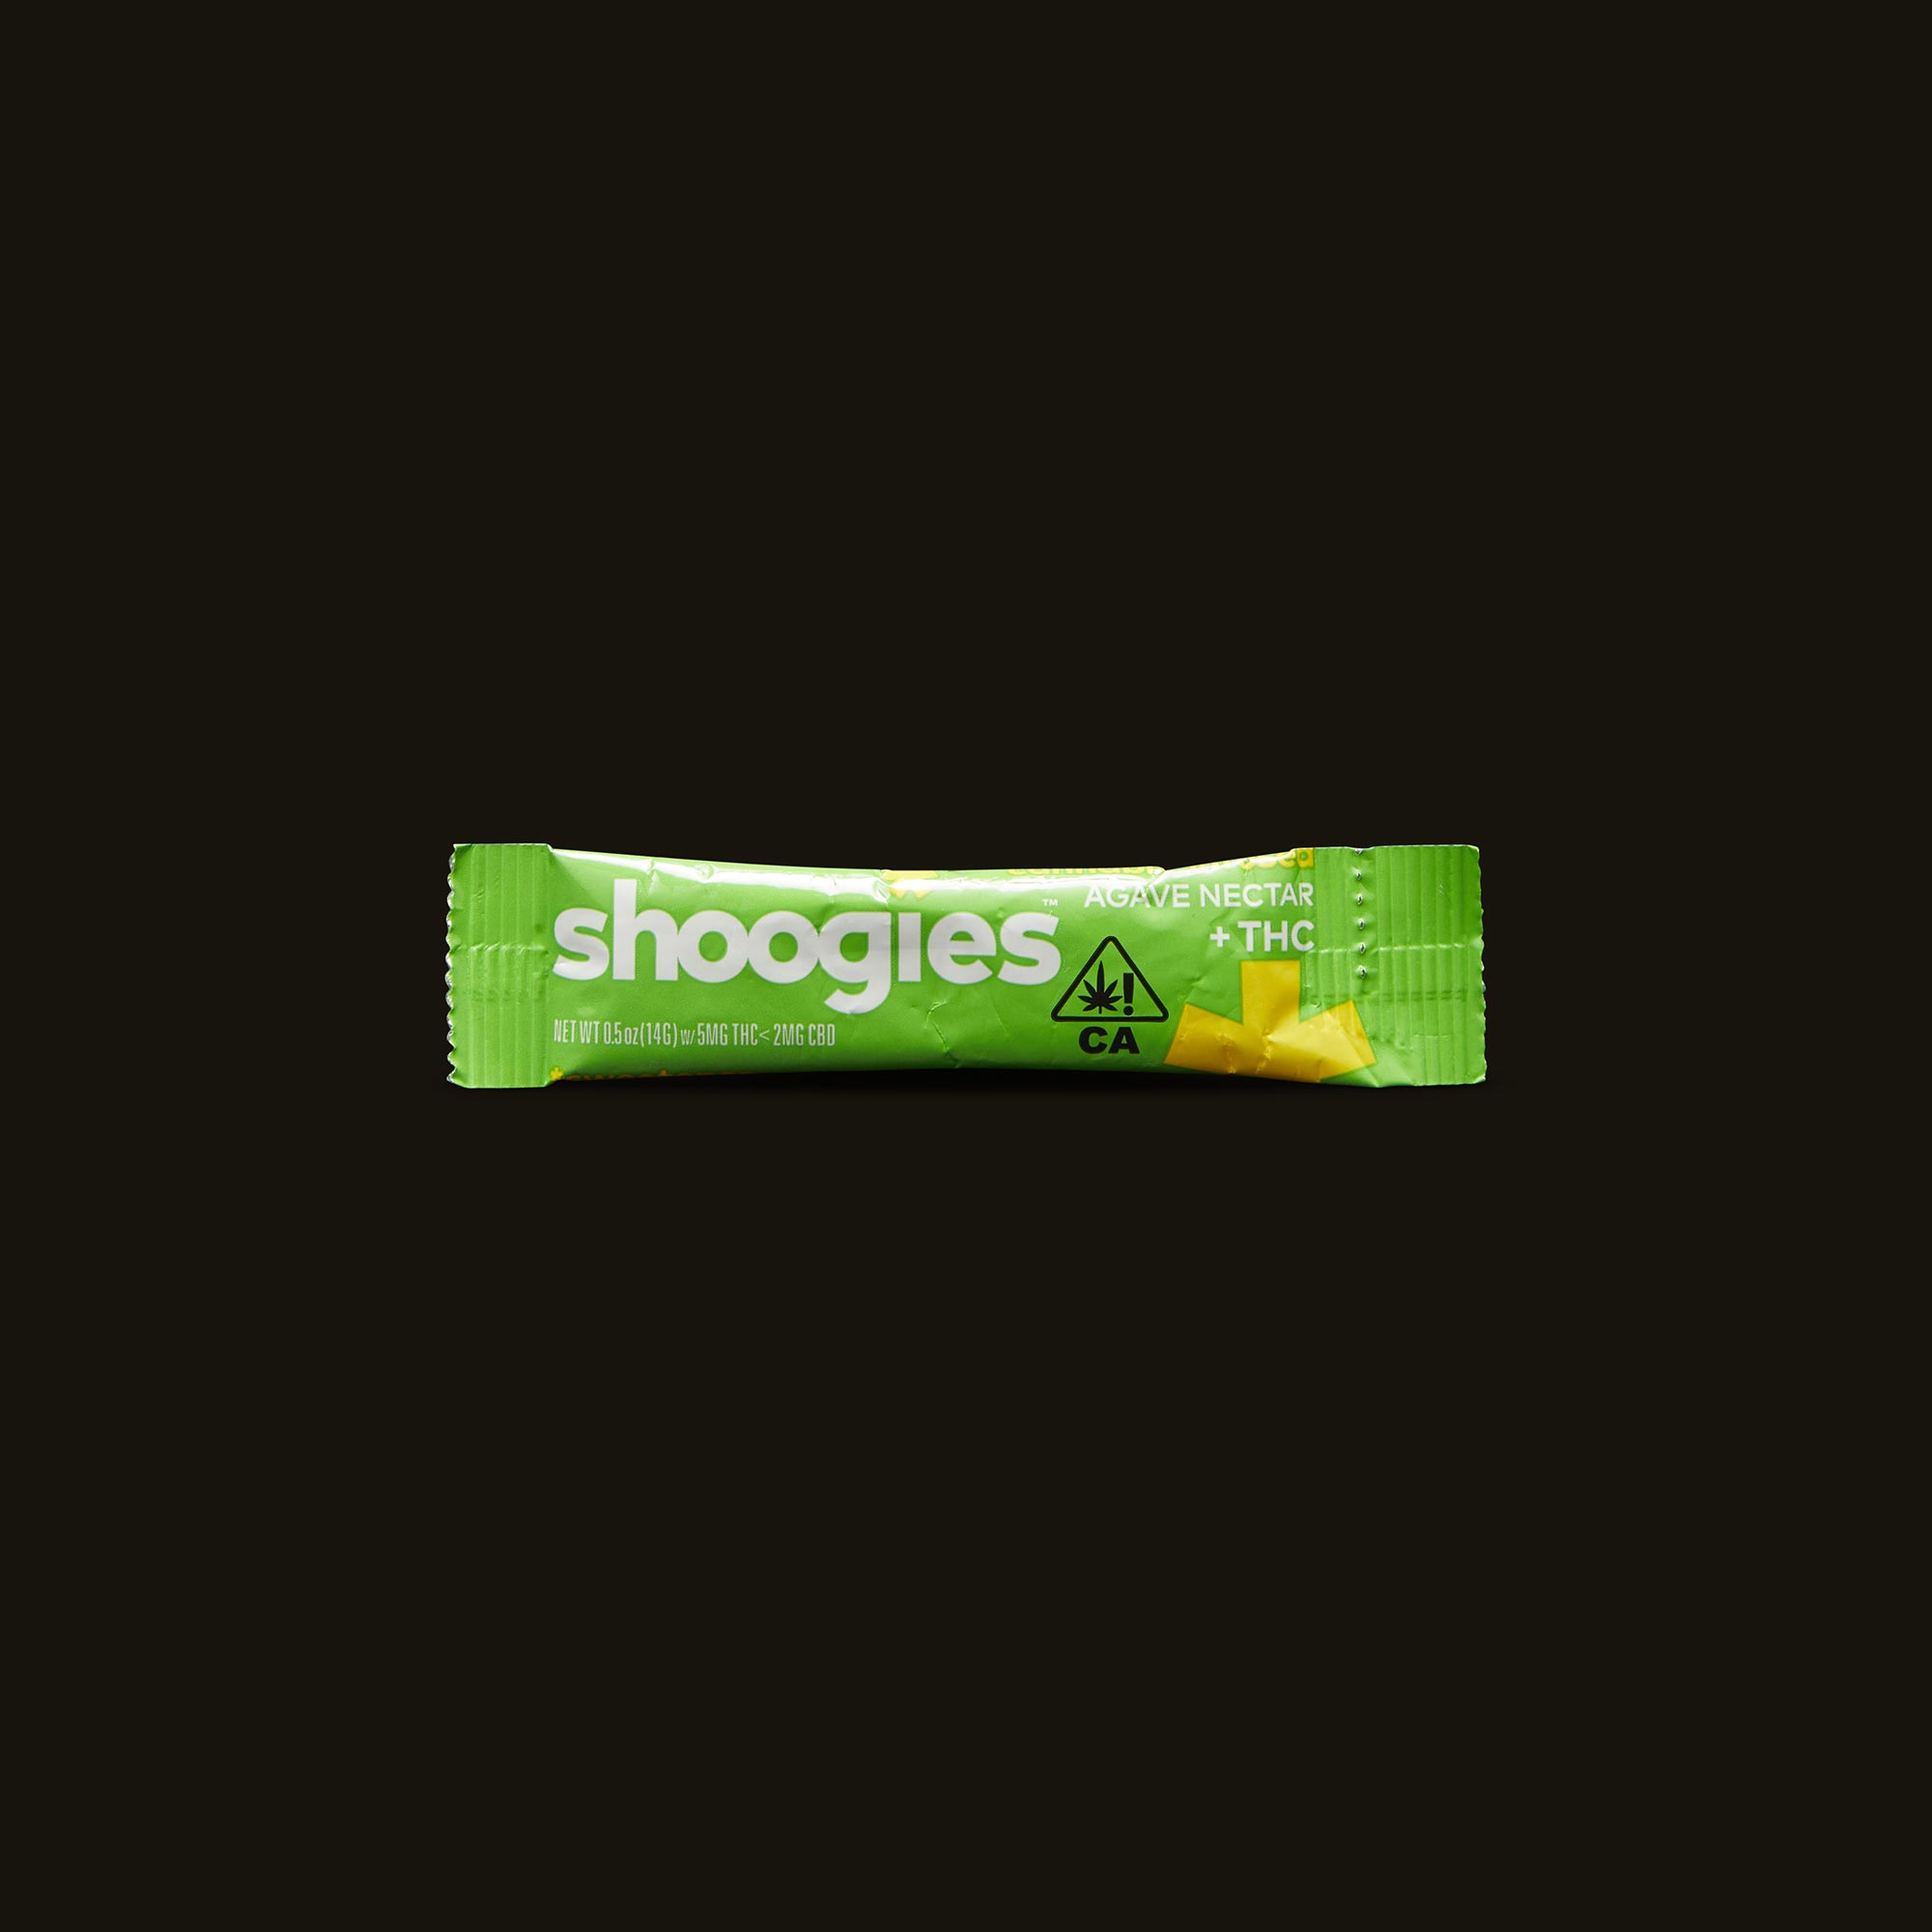 Shoogies Agave Nectar Pack